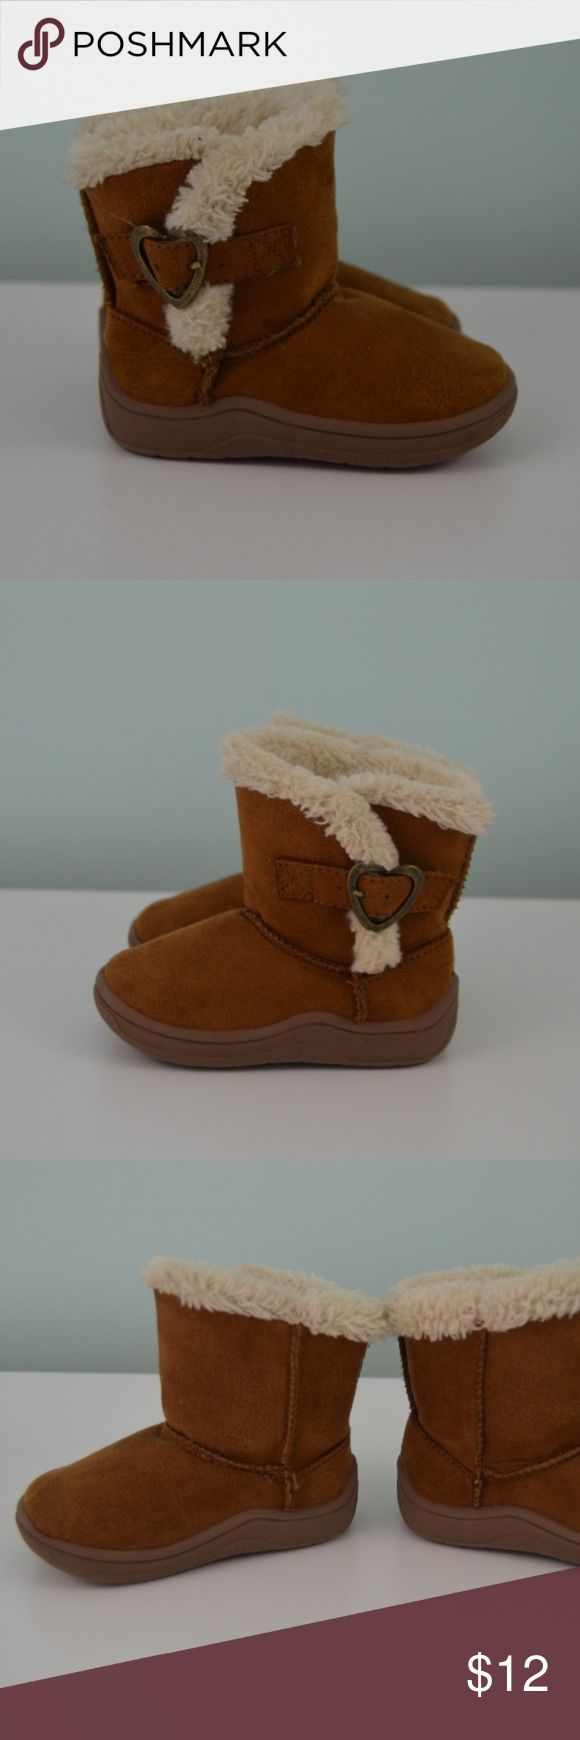 """Garanimals Faux Suede Fuzzy Boots Baby Girl Size 3 Garanimals faux suede/fur boots. Toddler/baby girl size 3. Heart buckle detail at side. Faux suede material is a brown shade and faux fur material is a cream shade. Condition - Pre-owned. Light scuffs/marks from wear. See pictures. Smoke free home. Measures approx. 5"""" from heel to toe on the bottom of the shoe/sole (the part that will be in contact with the ground). Garanimals Shoes Boots"""